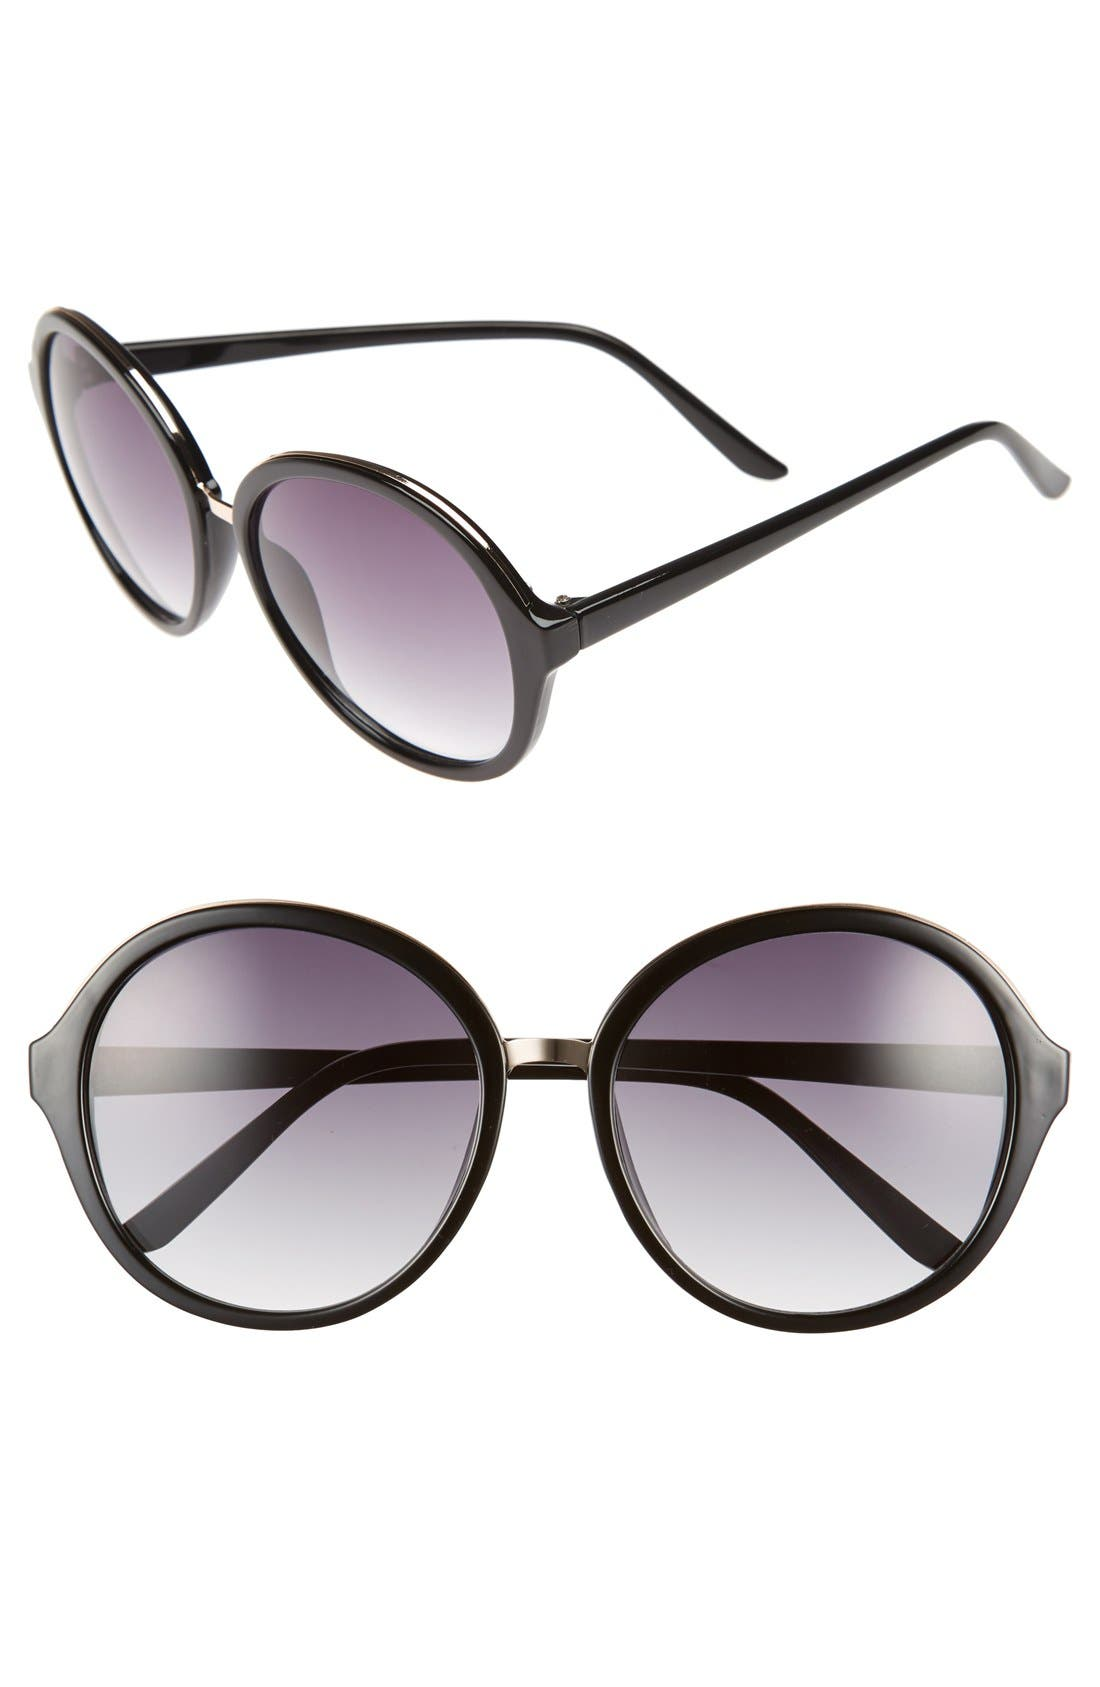 Alternate Image 1 Selected - BP. 60mm Oversized Round Sunglasses